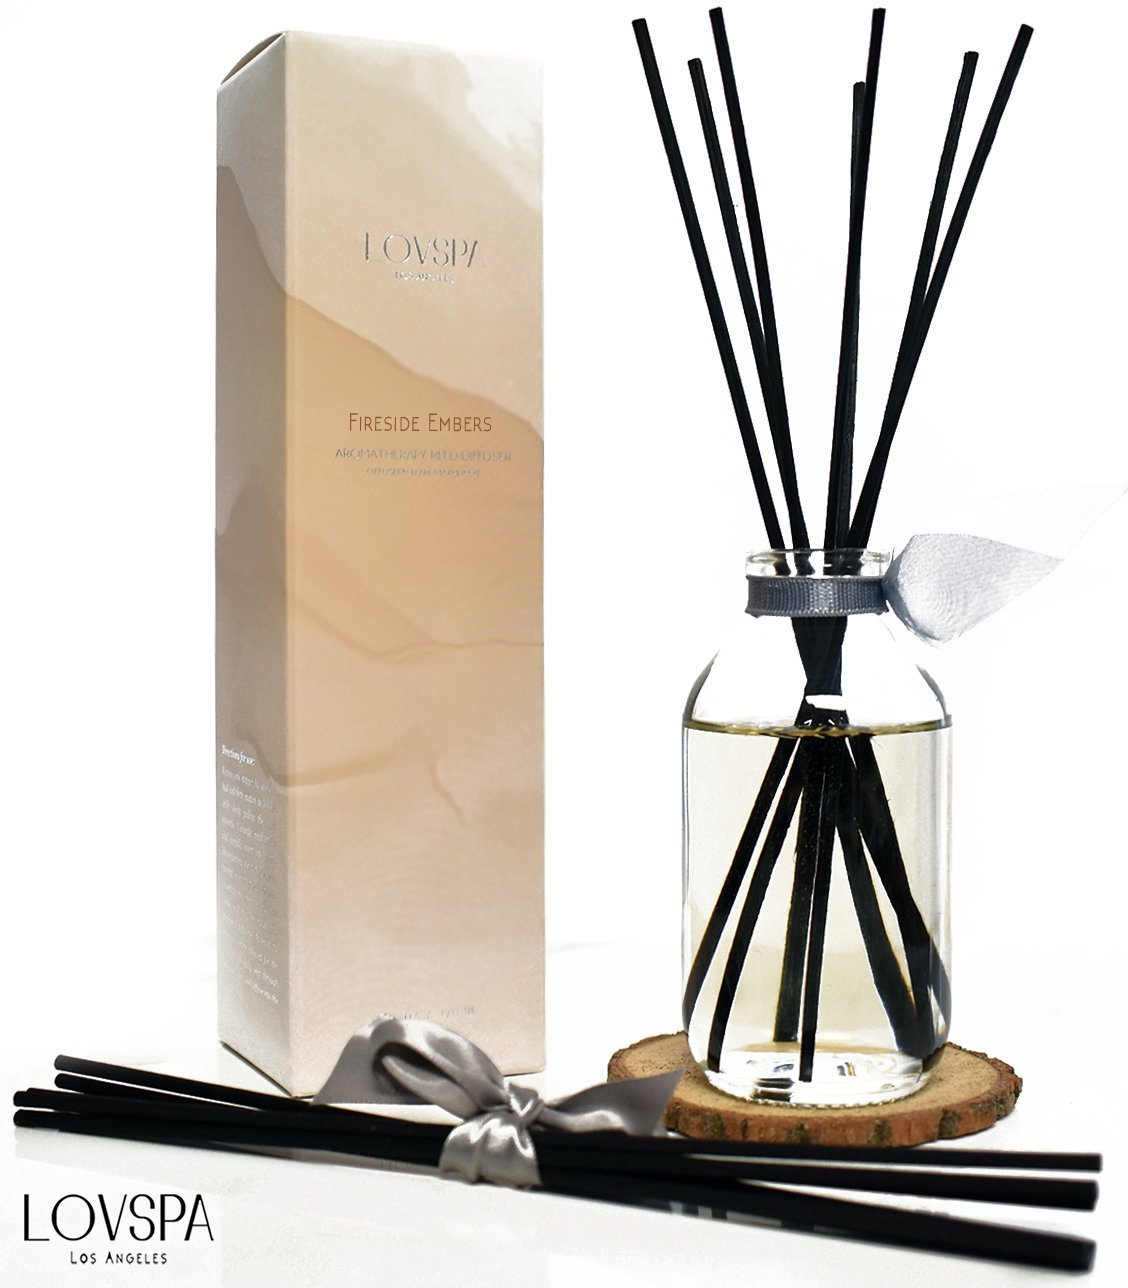 LOVSPA Romantic Smokey Fireside Embers Reed Diffuser Set by Includes a Wood Slice Coaster! Glowing Embers, Wood Smoke, Saffron Suede & Amber Cognac | A Masculine Scent | Gift for Dad or Husband!